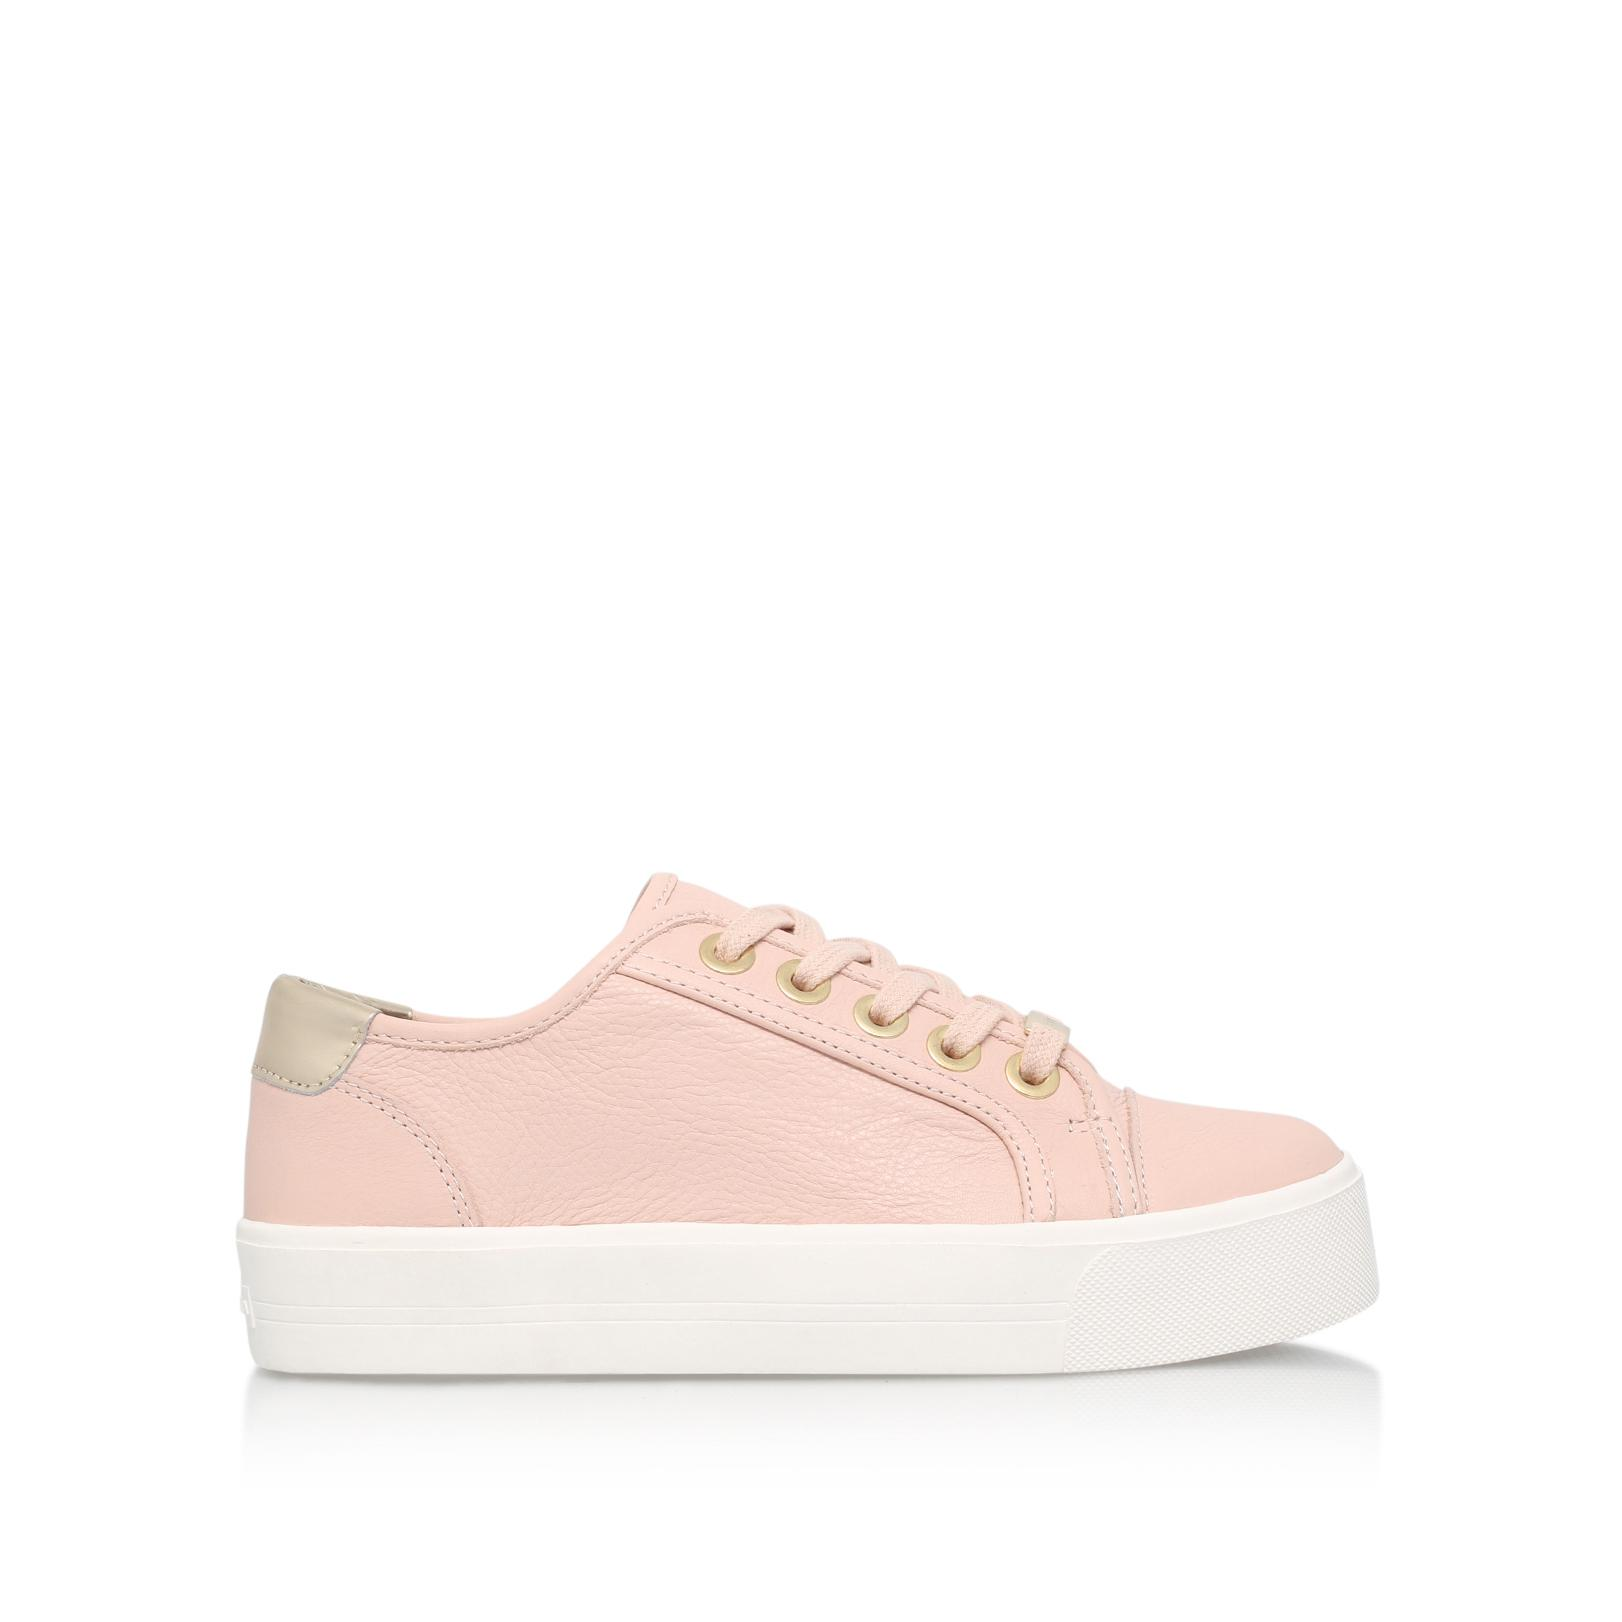 Carvela Kurt Geiger Leather Lorna Flat Lace Up Sneakers in Nude (Pink)